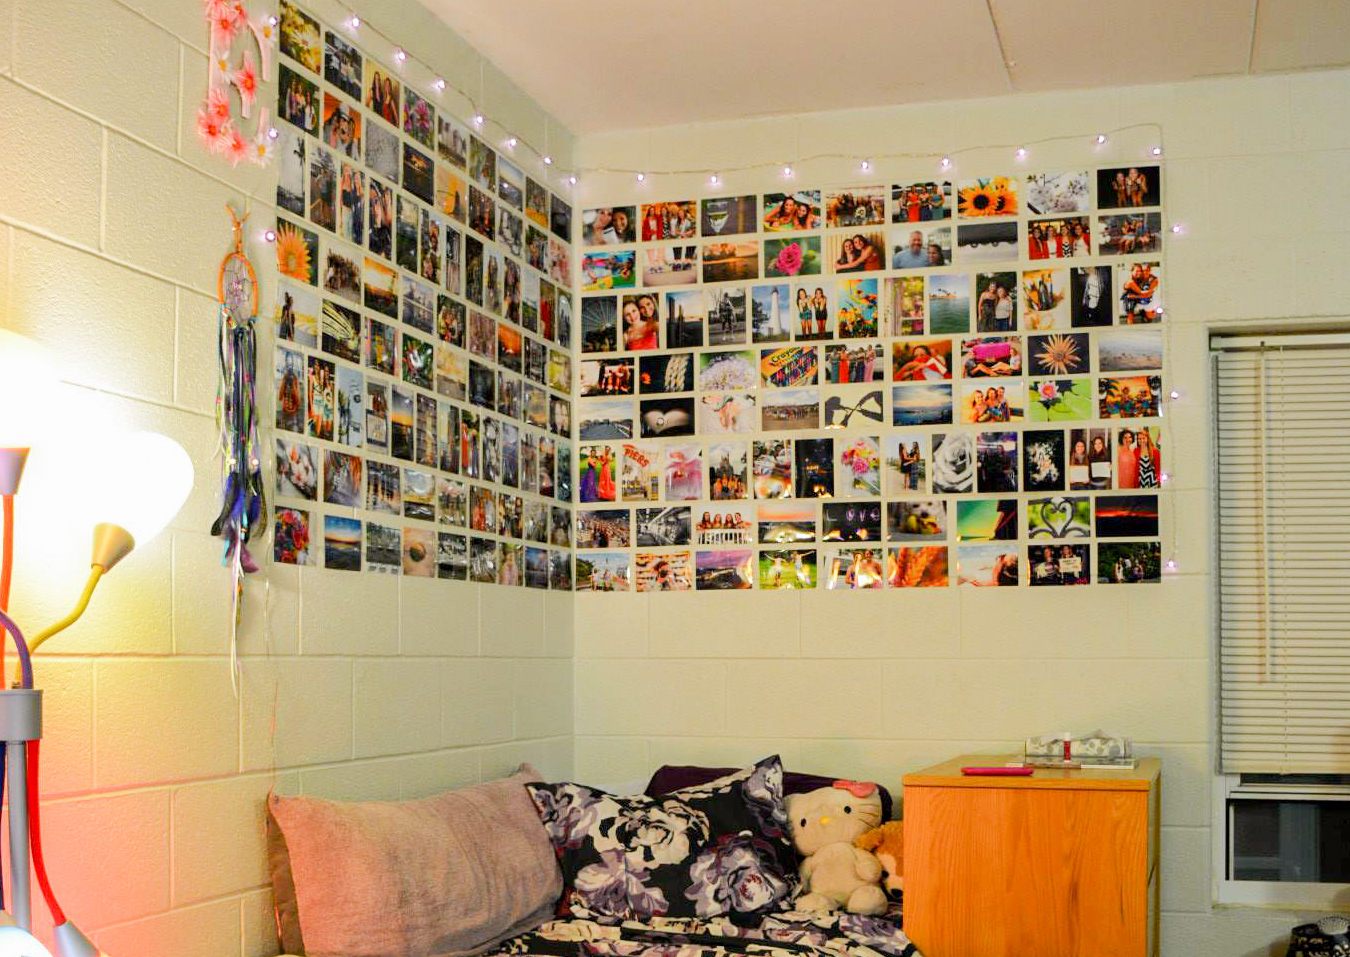 Dorm room with photos on the wall